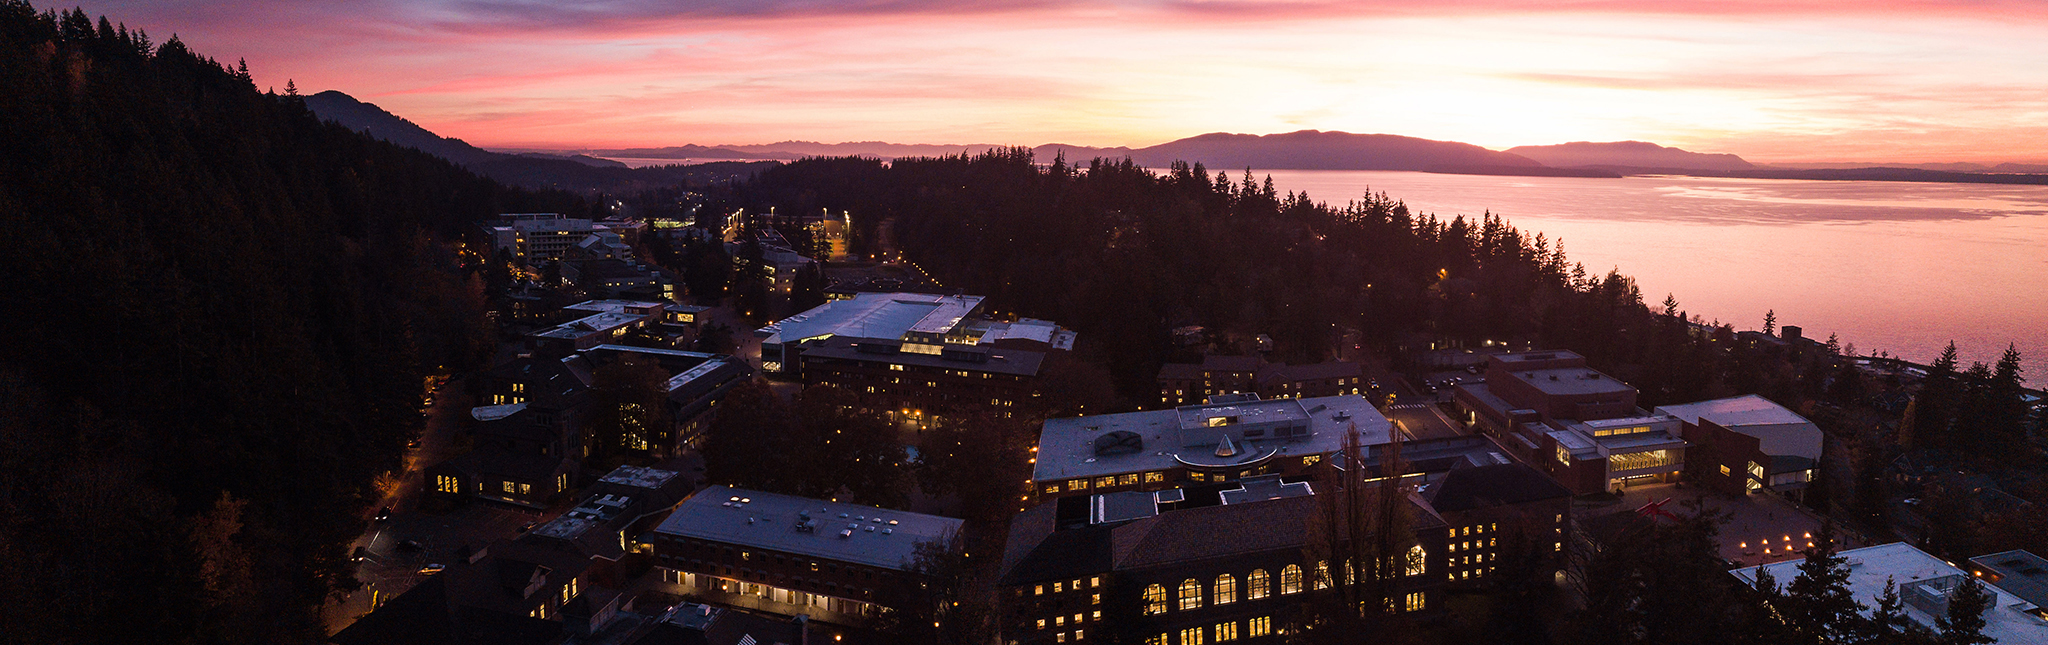 Evening shot of campus by drone. The bay and sky are pink and purple. The windows of the buildings glow gold with the fading light of the sun.